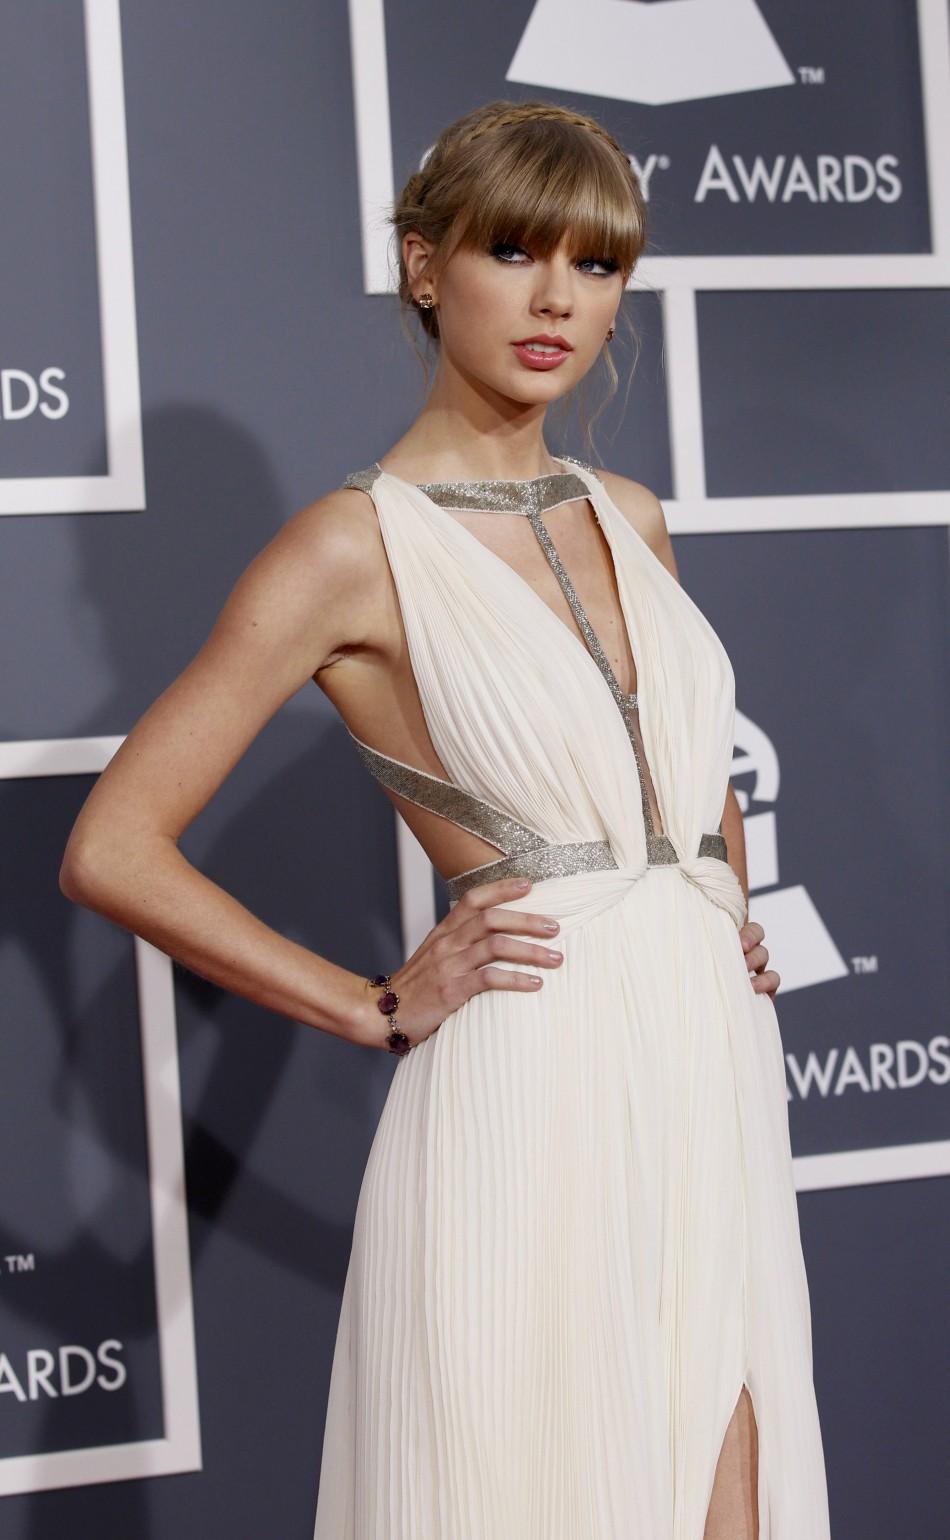 4662-taylor-swift-grammys-2013.jpg